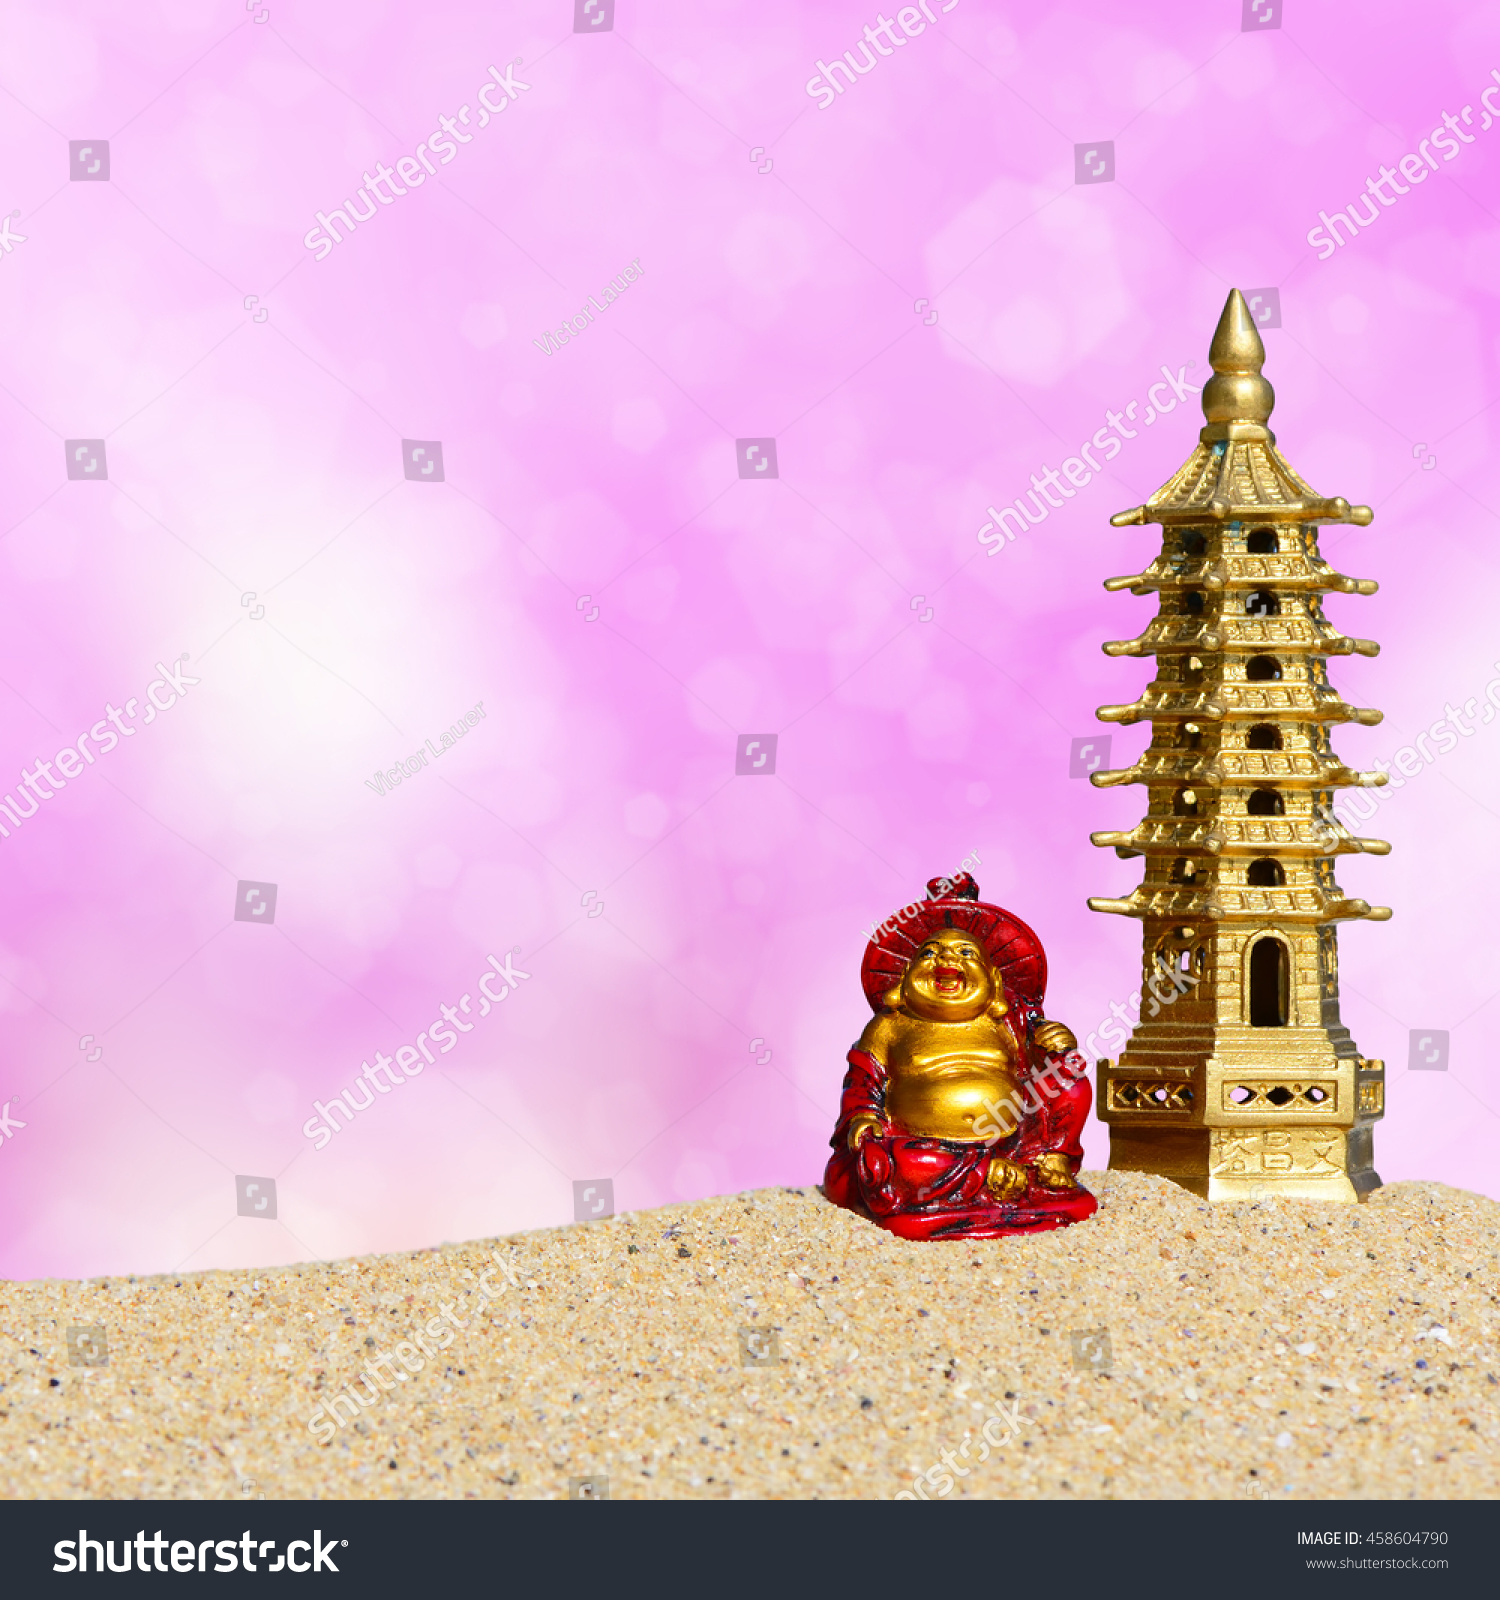 Royalty Free Laughing Buddha And Seven Storied 458604790 Stock